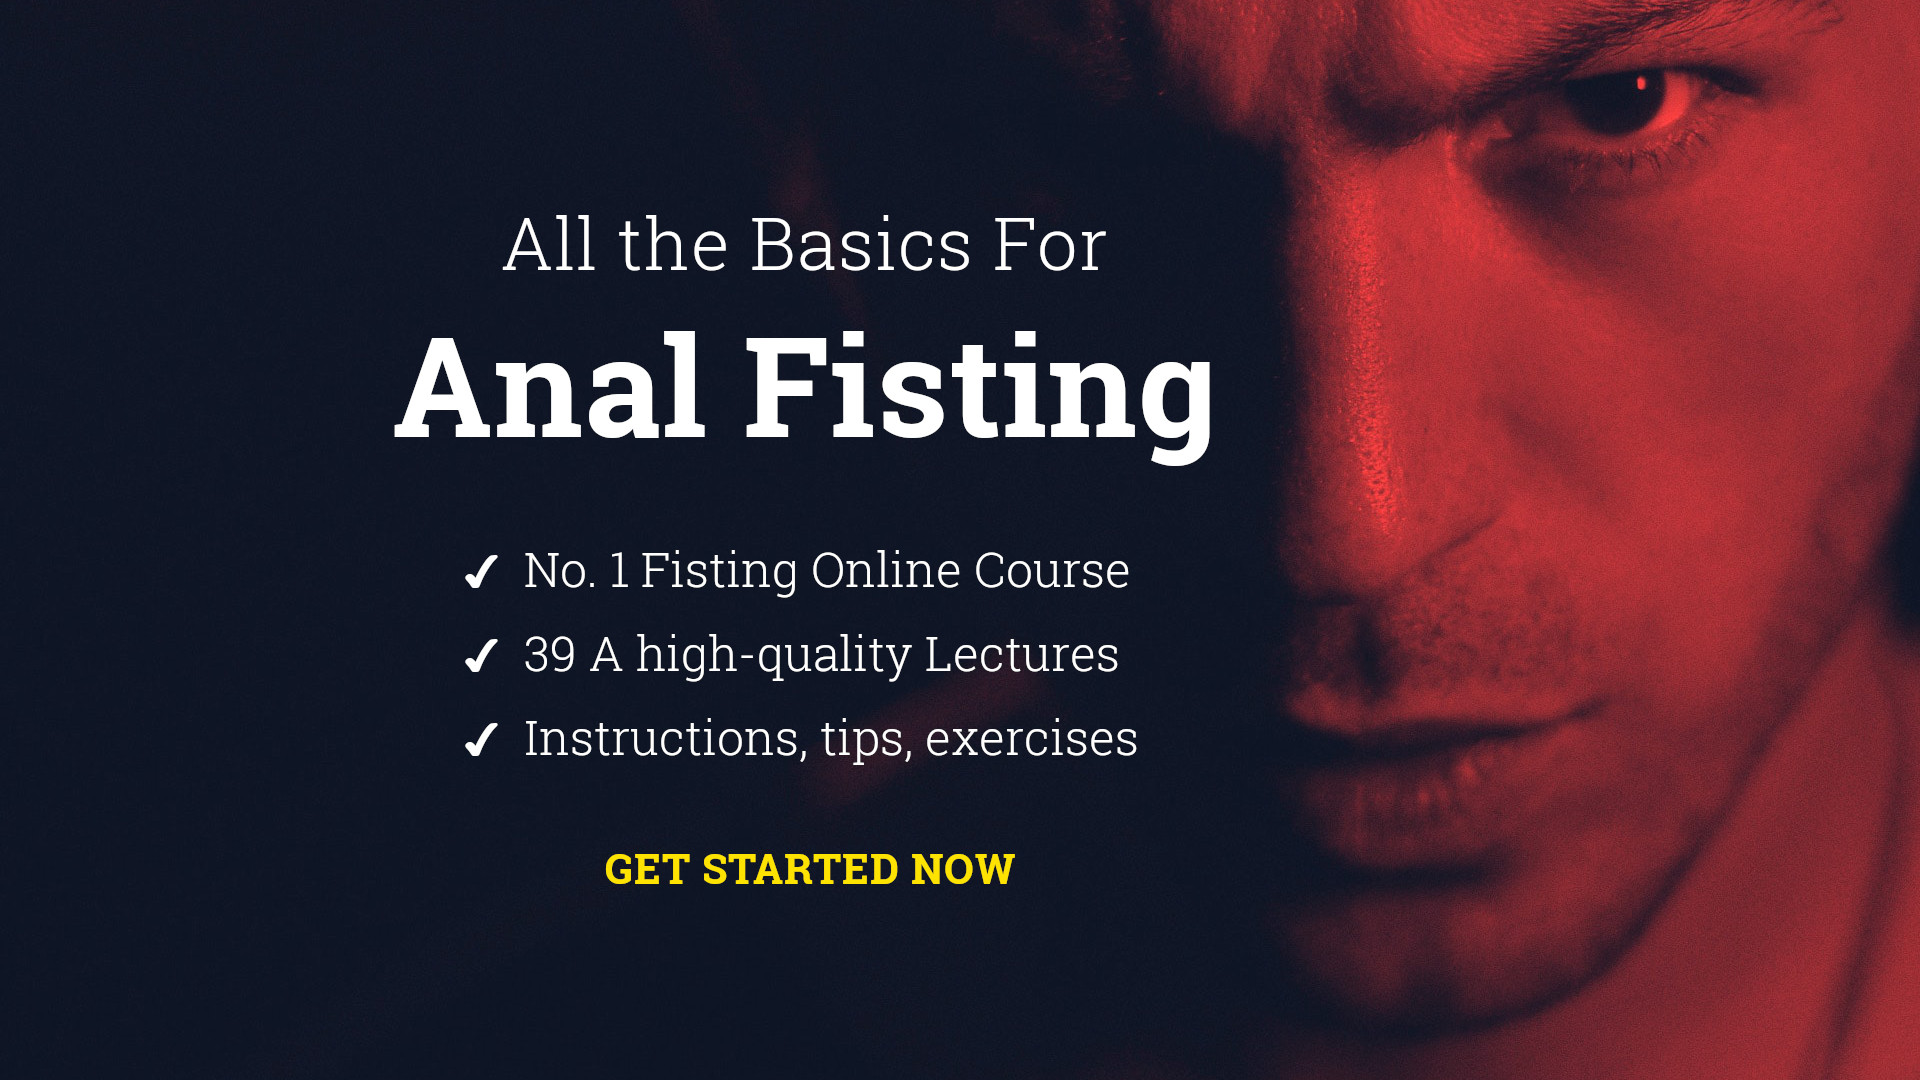 All the basics for anal fisting